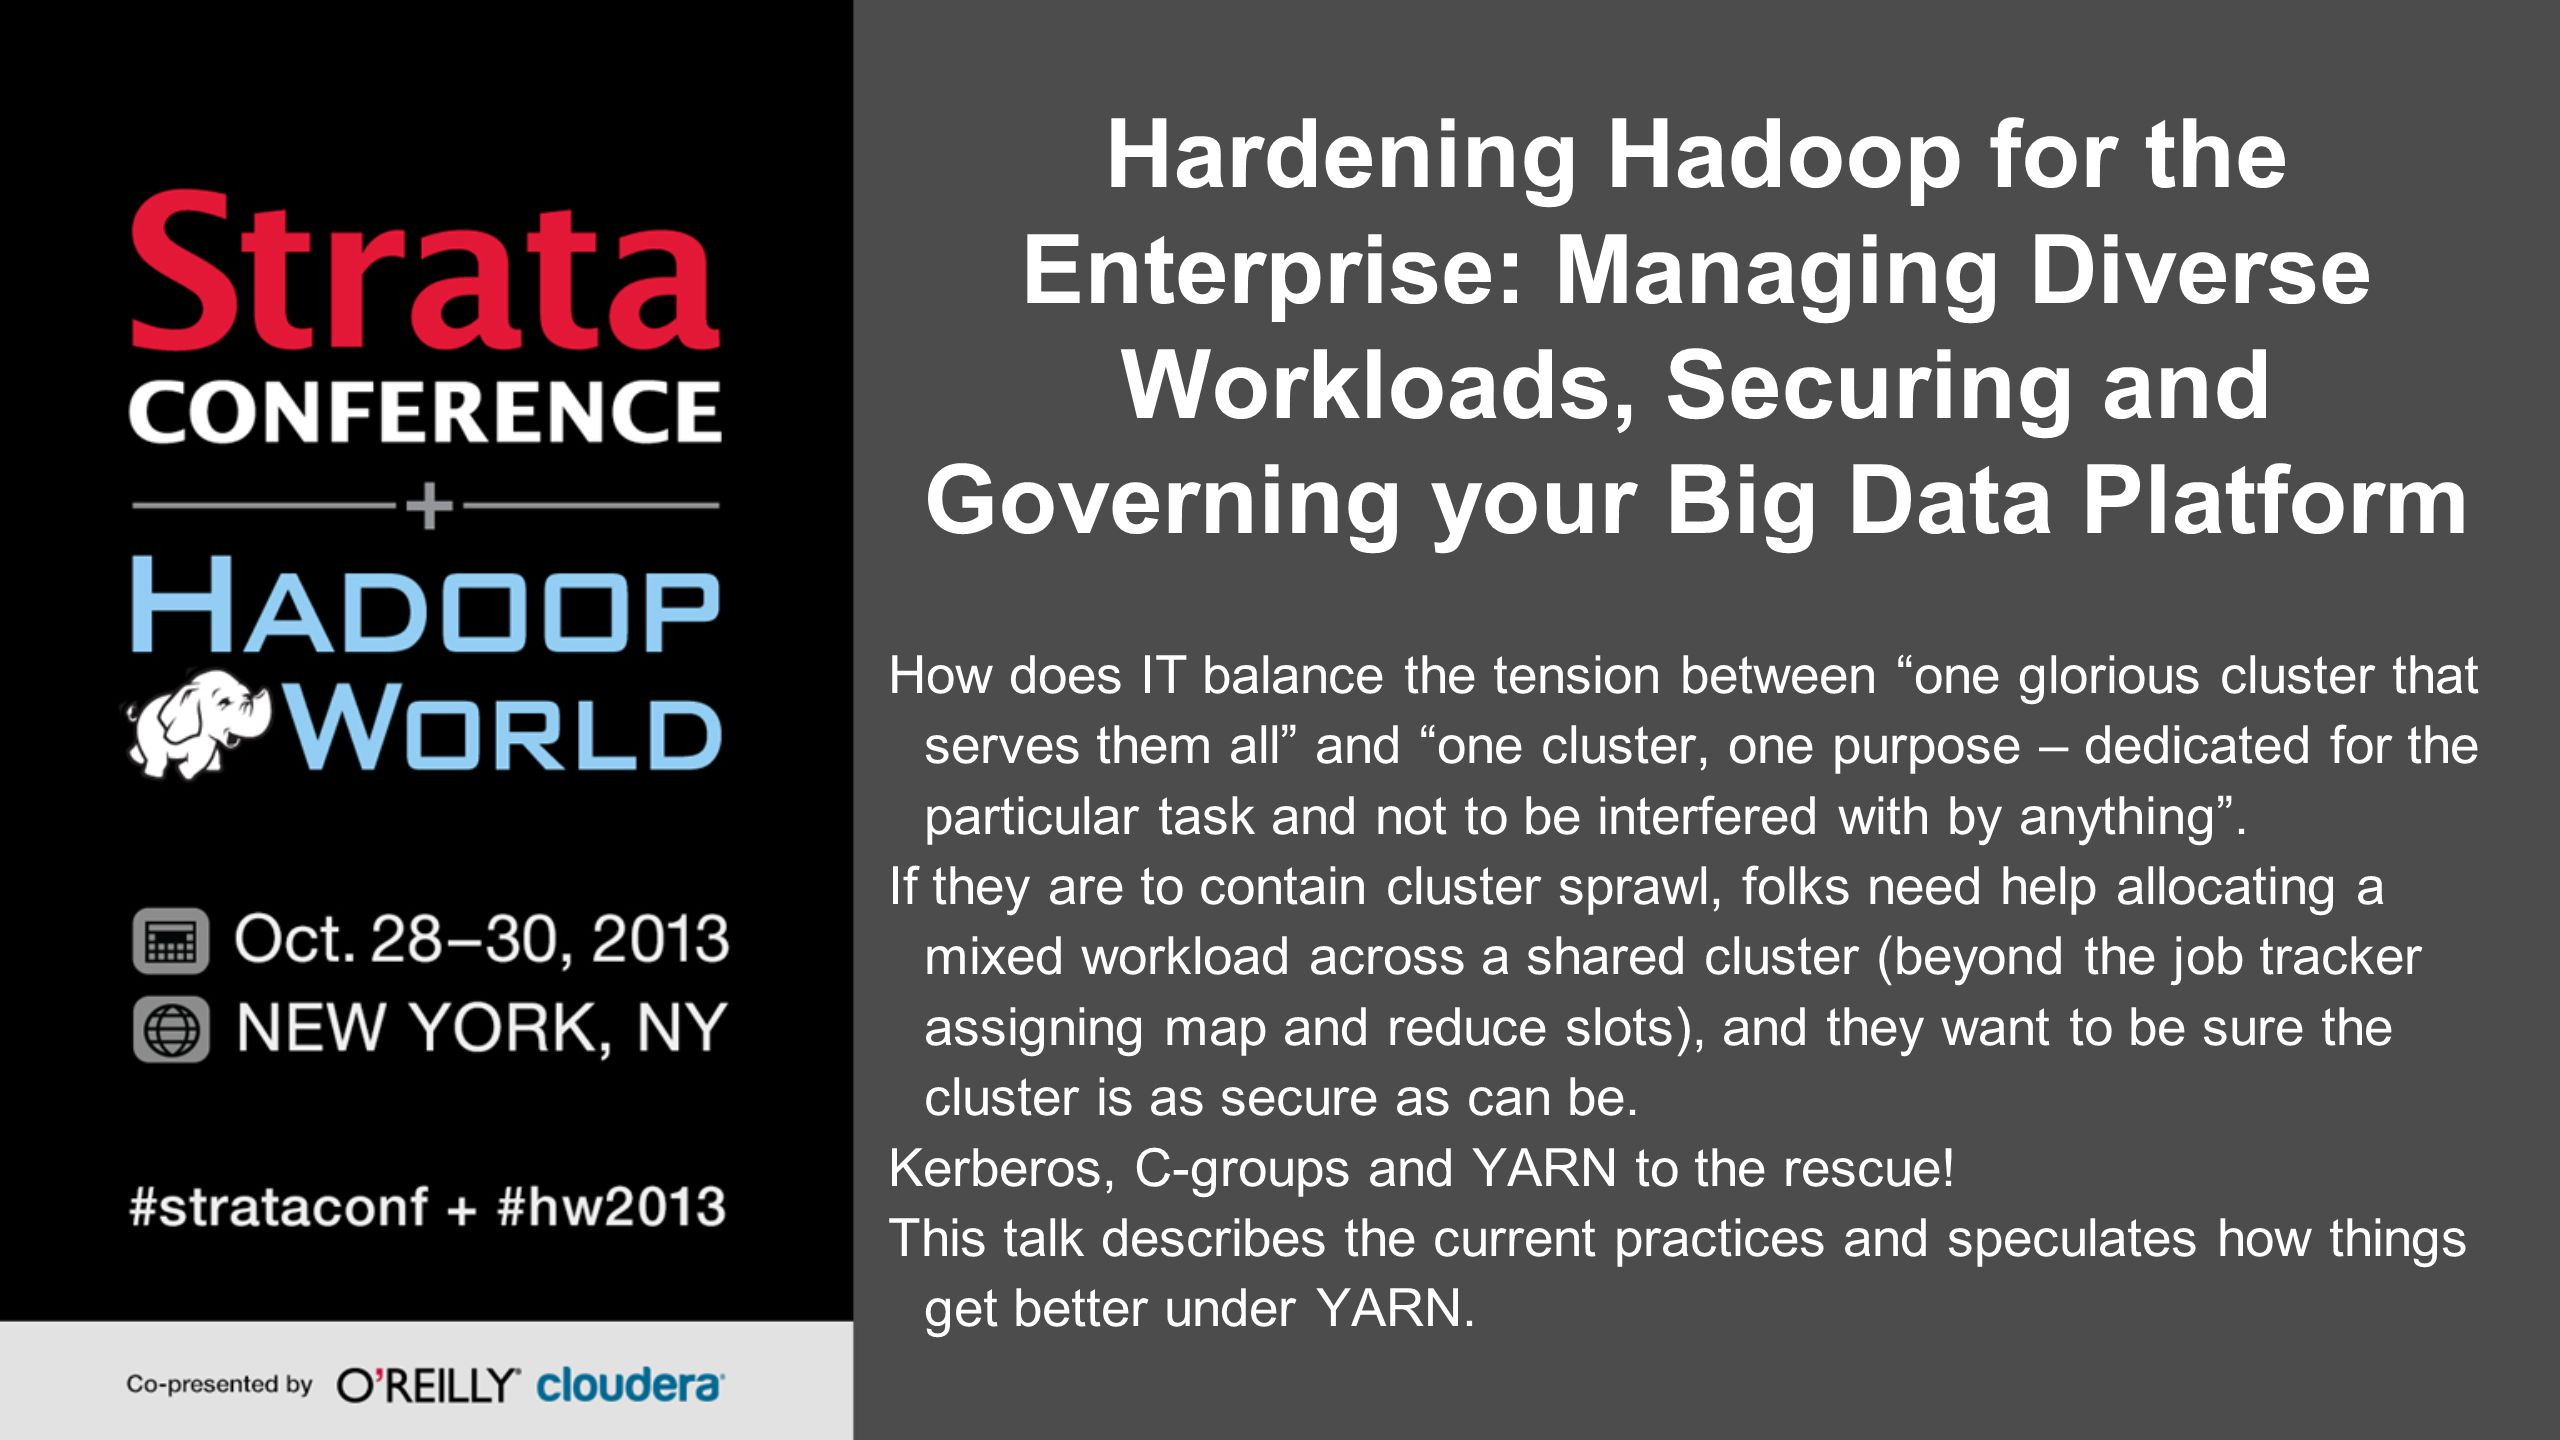 Hardening Hadoop for the Enterprise: Managing Diverse Workloads, Securing and Governing your Big Data Platform How does IT balance the tension between one glorious cluster that serves them all and one cluster, one purpose – dedicated for the particular task and not to be interfered with by anything .